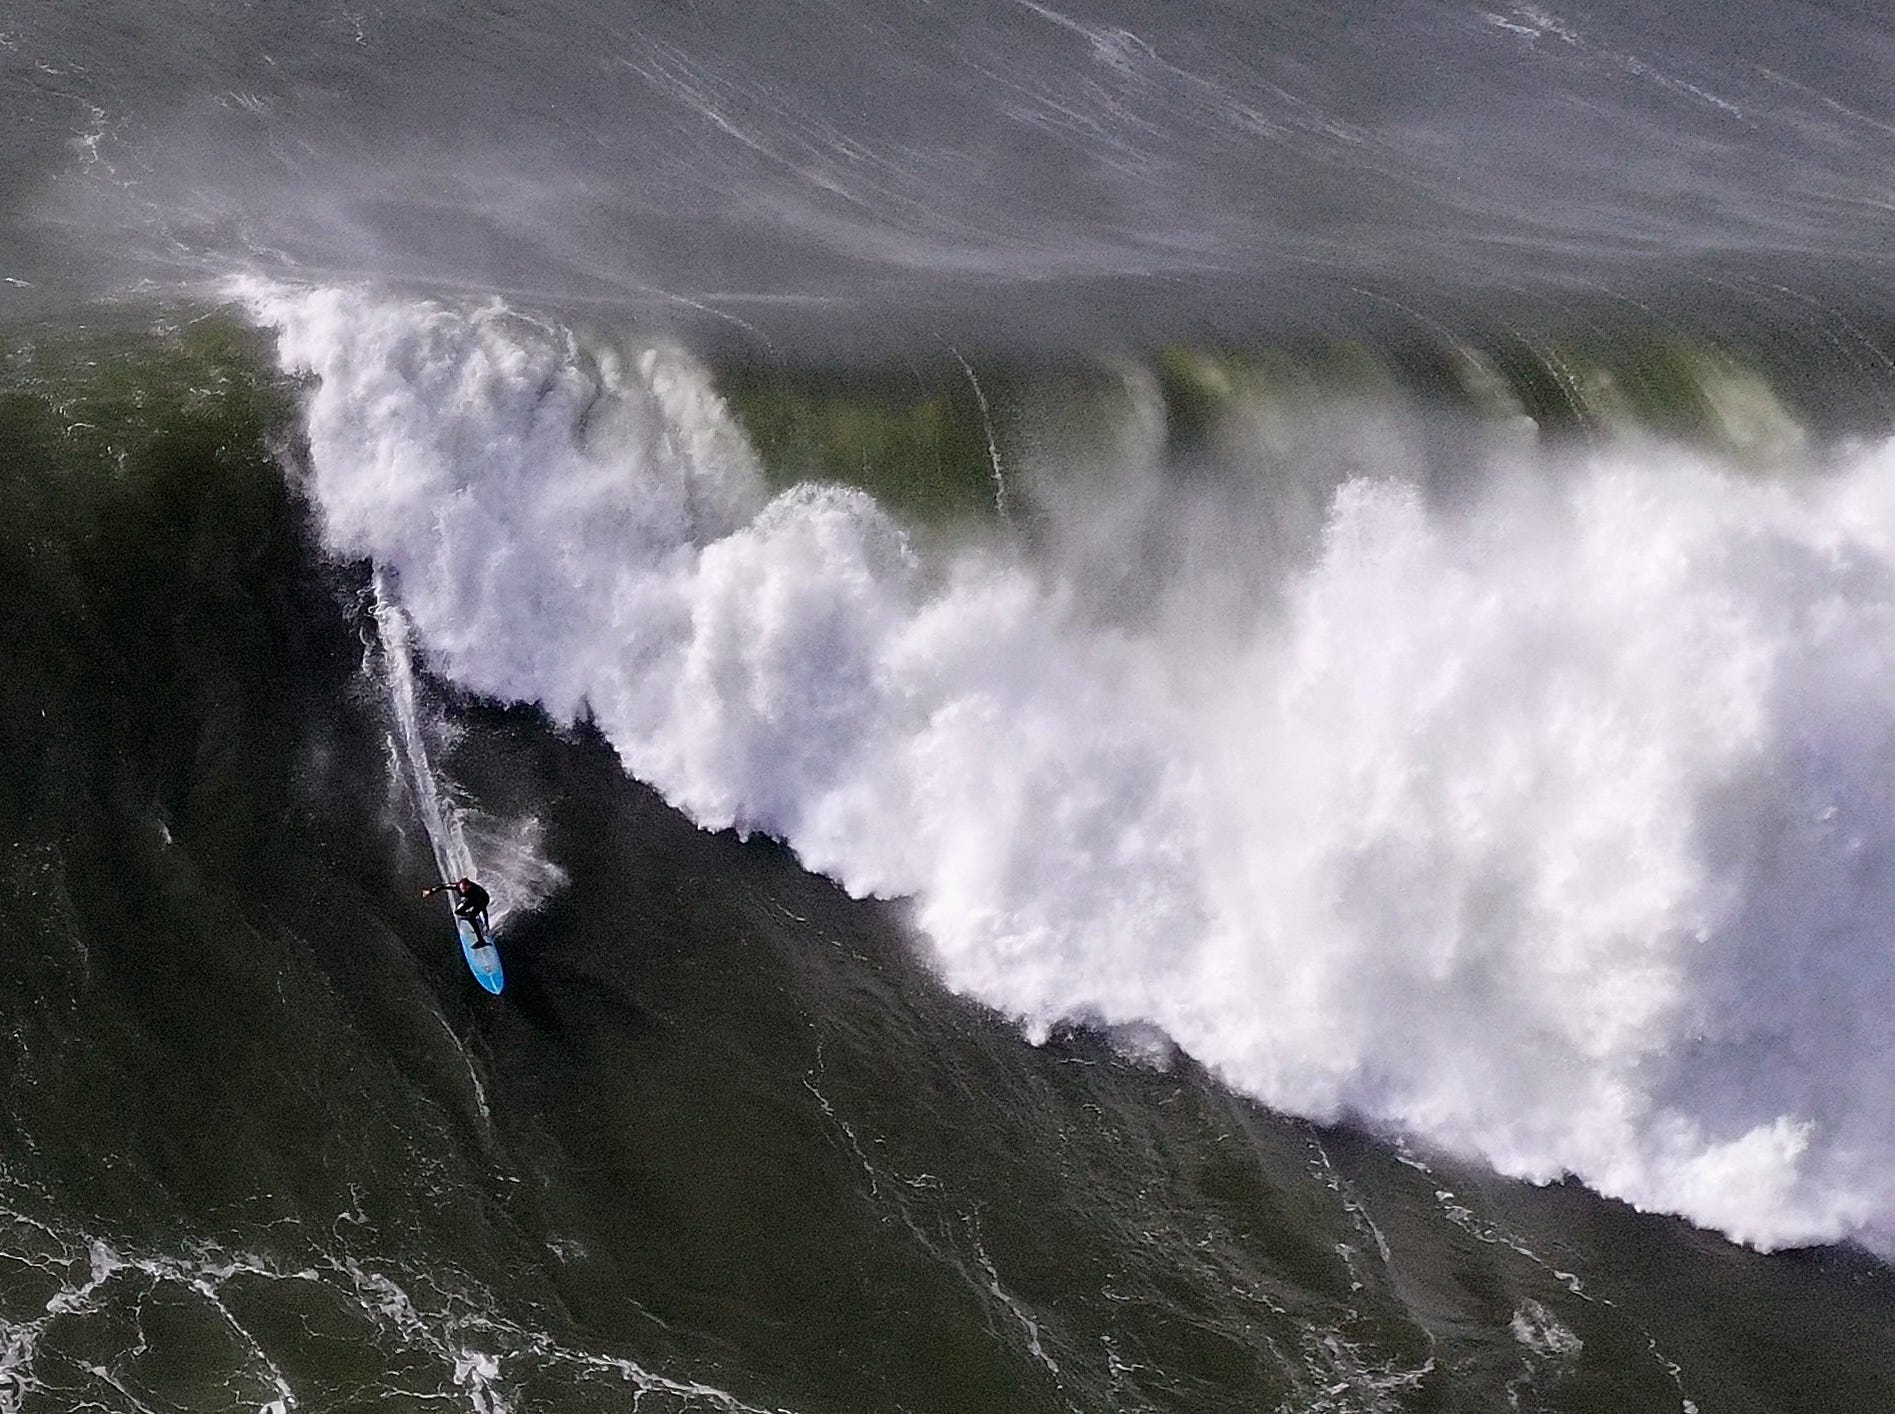 Dec. 17, 2018: A surfer rides a wave at Mavericks in Half Moon Bay, Calif. A giant swell brought waves of up to 50 feet high to Northern California.